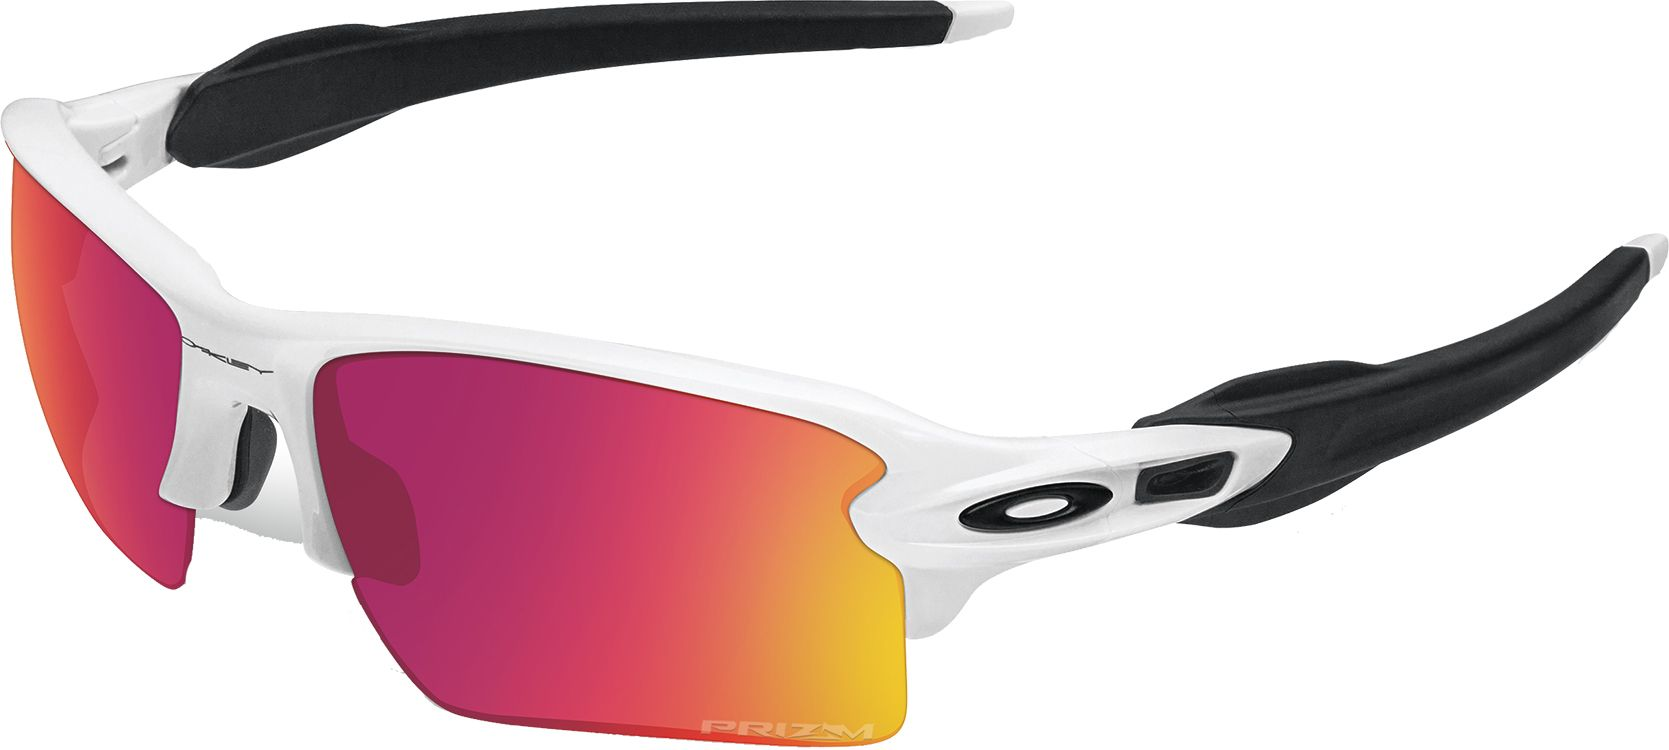 oakley half jacket womens sunglasses  product image oakley flak 2.0 xl baseball sunglasses